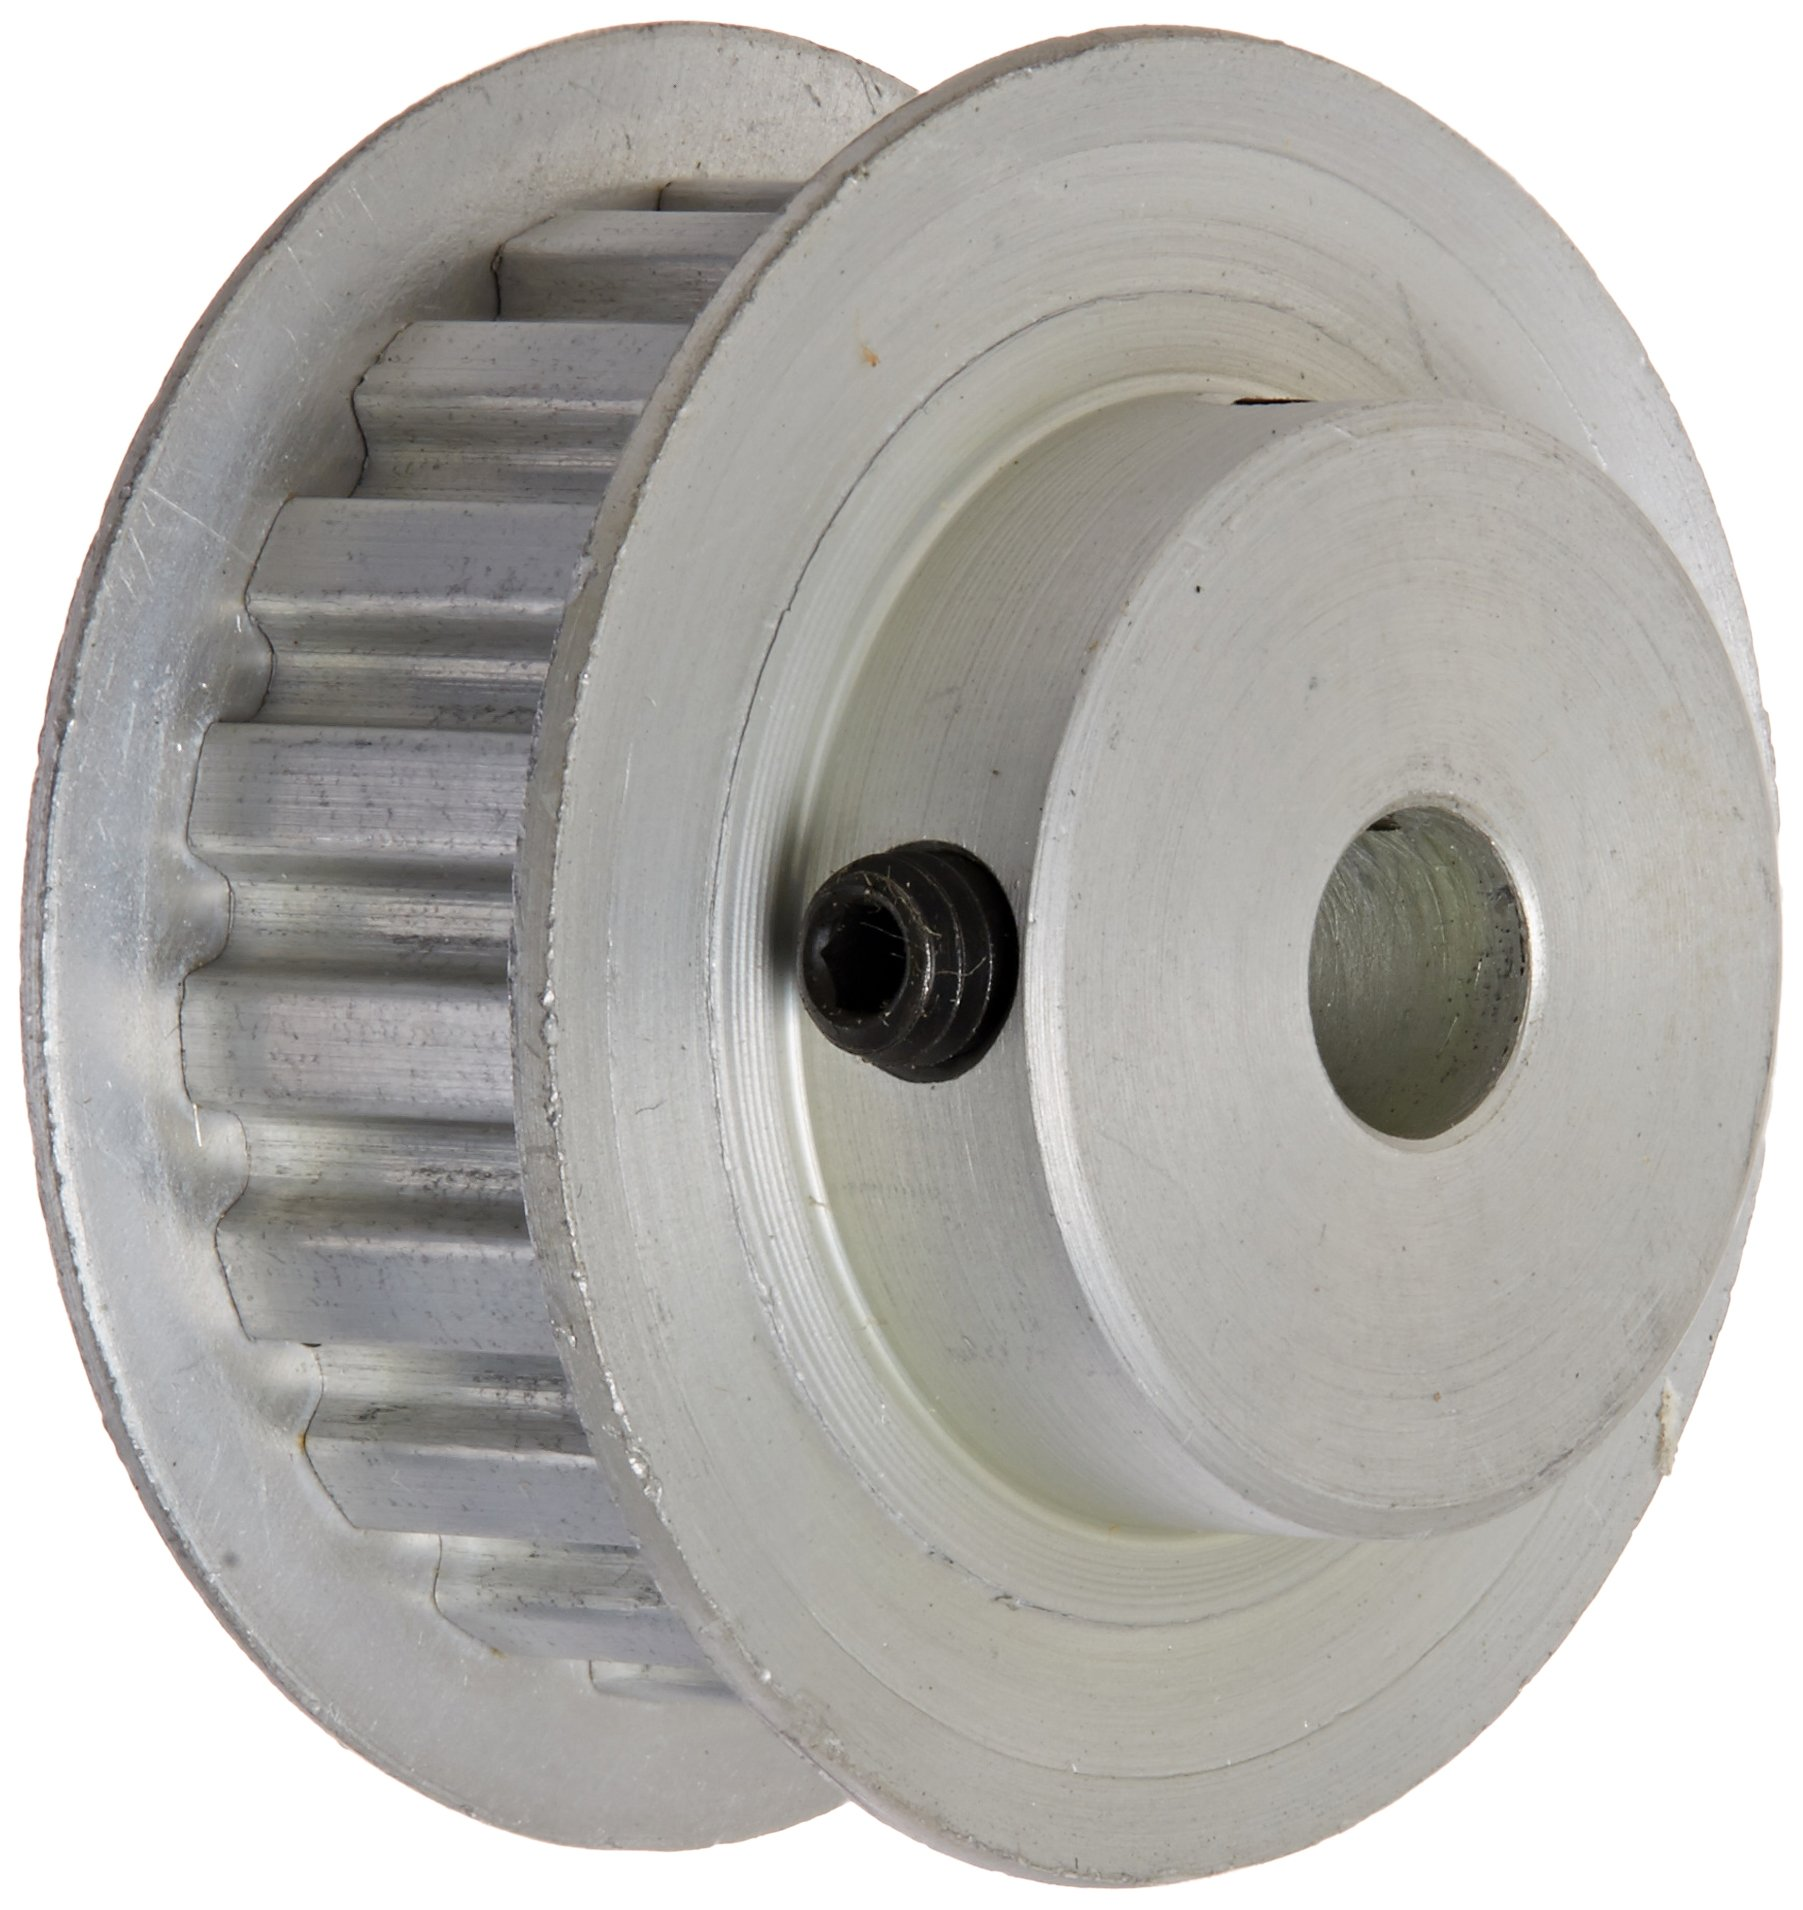 Gates PB19XL037 PowerGrip Aluminum Timing Pulley, 1/5'' Pitch, 19 Groove, 1.210'' Pitch Diameter, 1/4'' to 1/2'' Bore Range, For 1/4'' and 3/8'' Width Belt